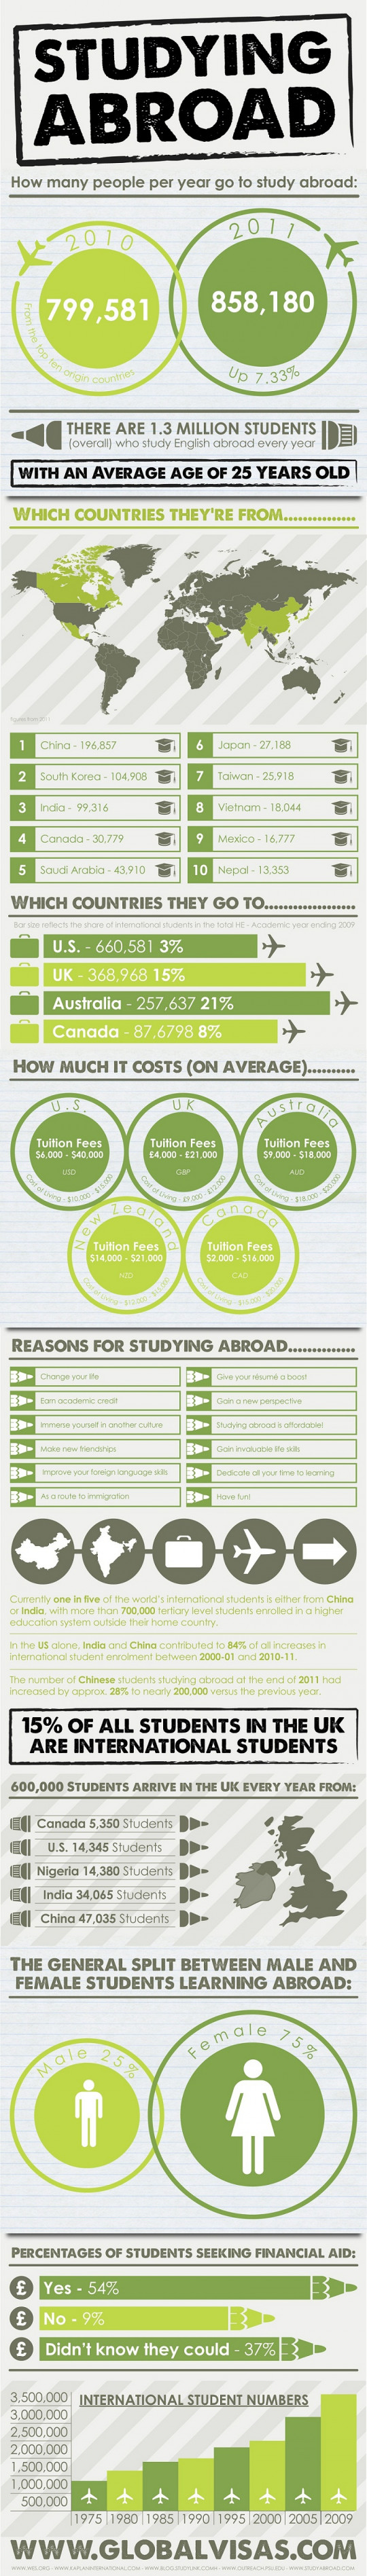 Studying Abroad: Where Students Go and Why